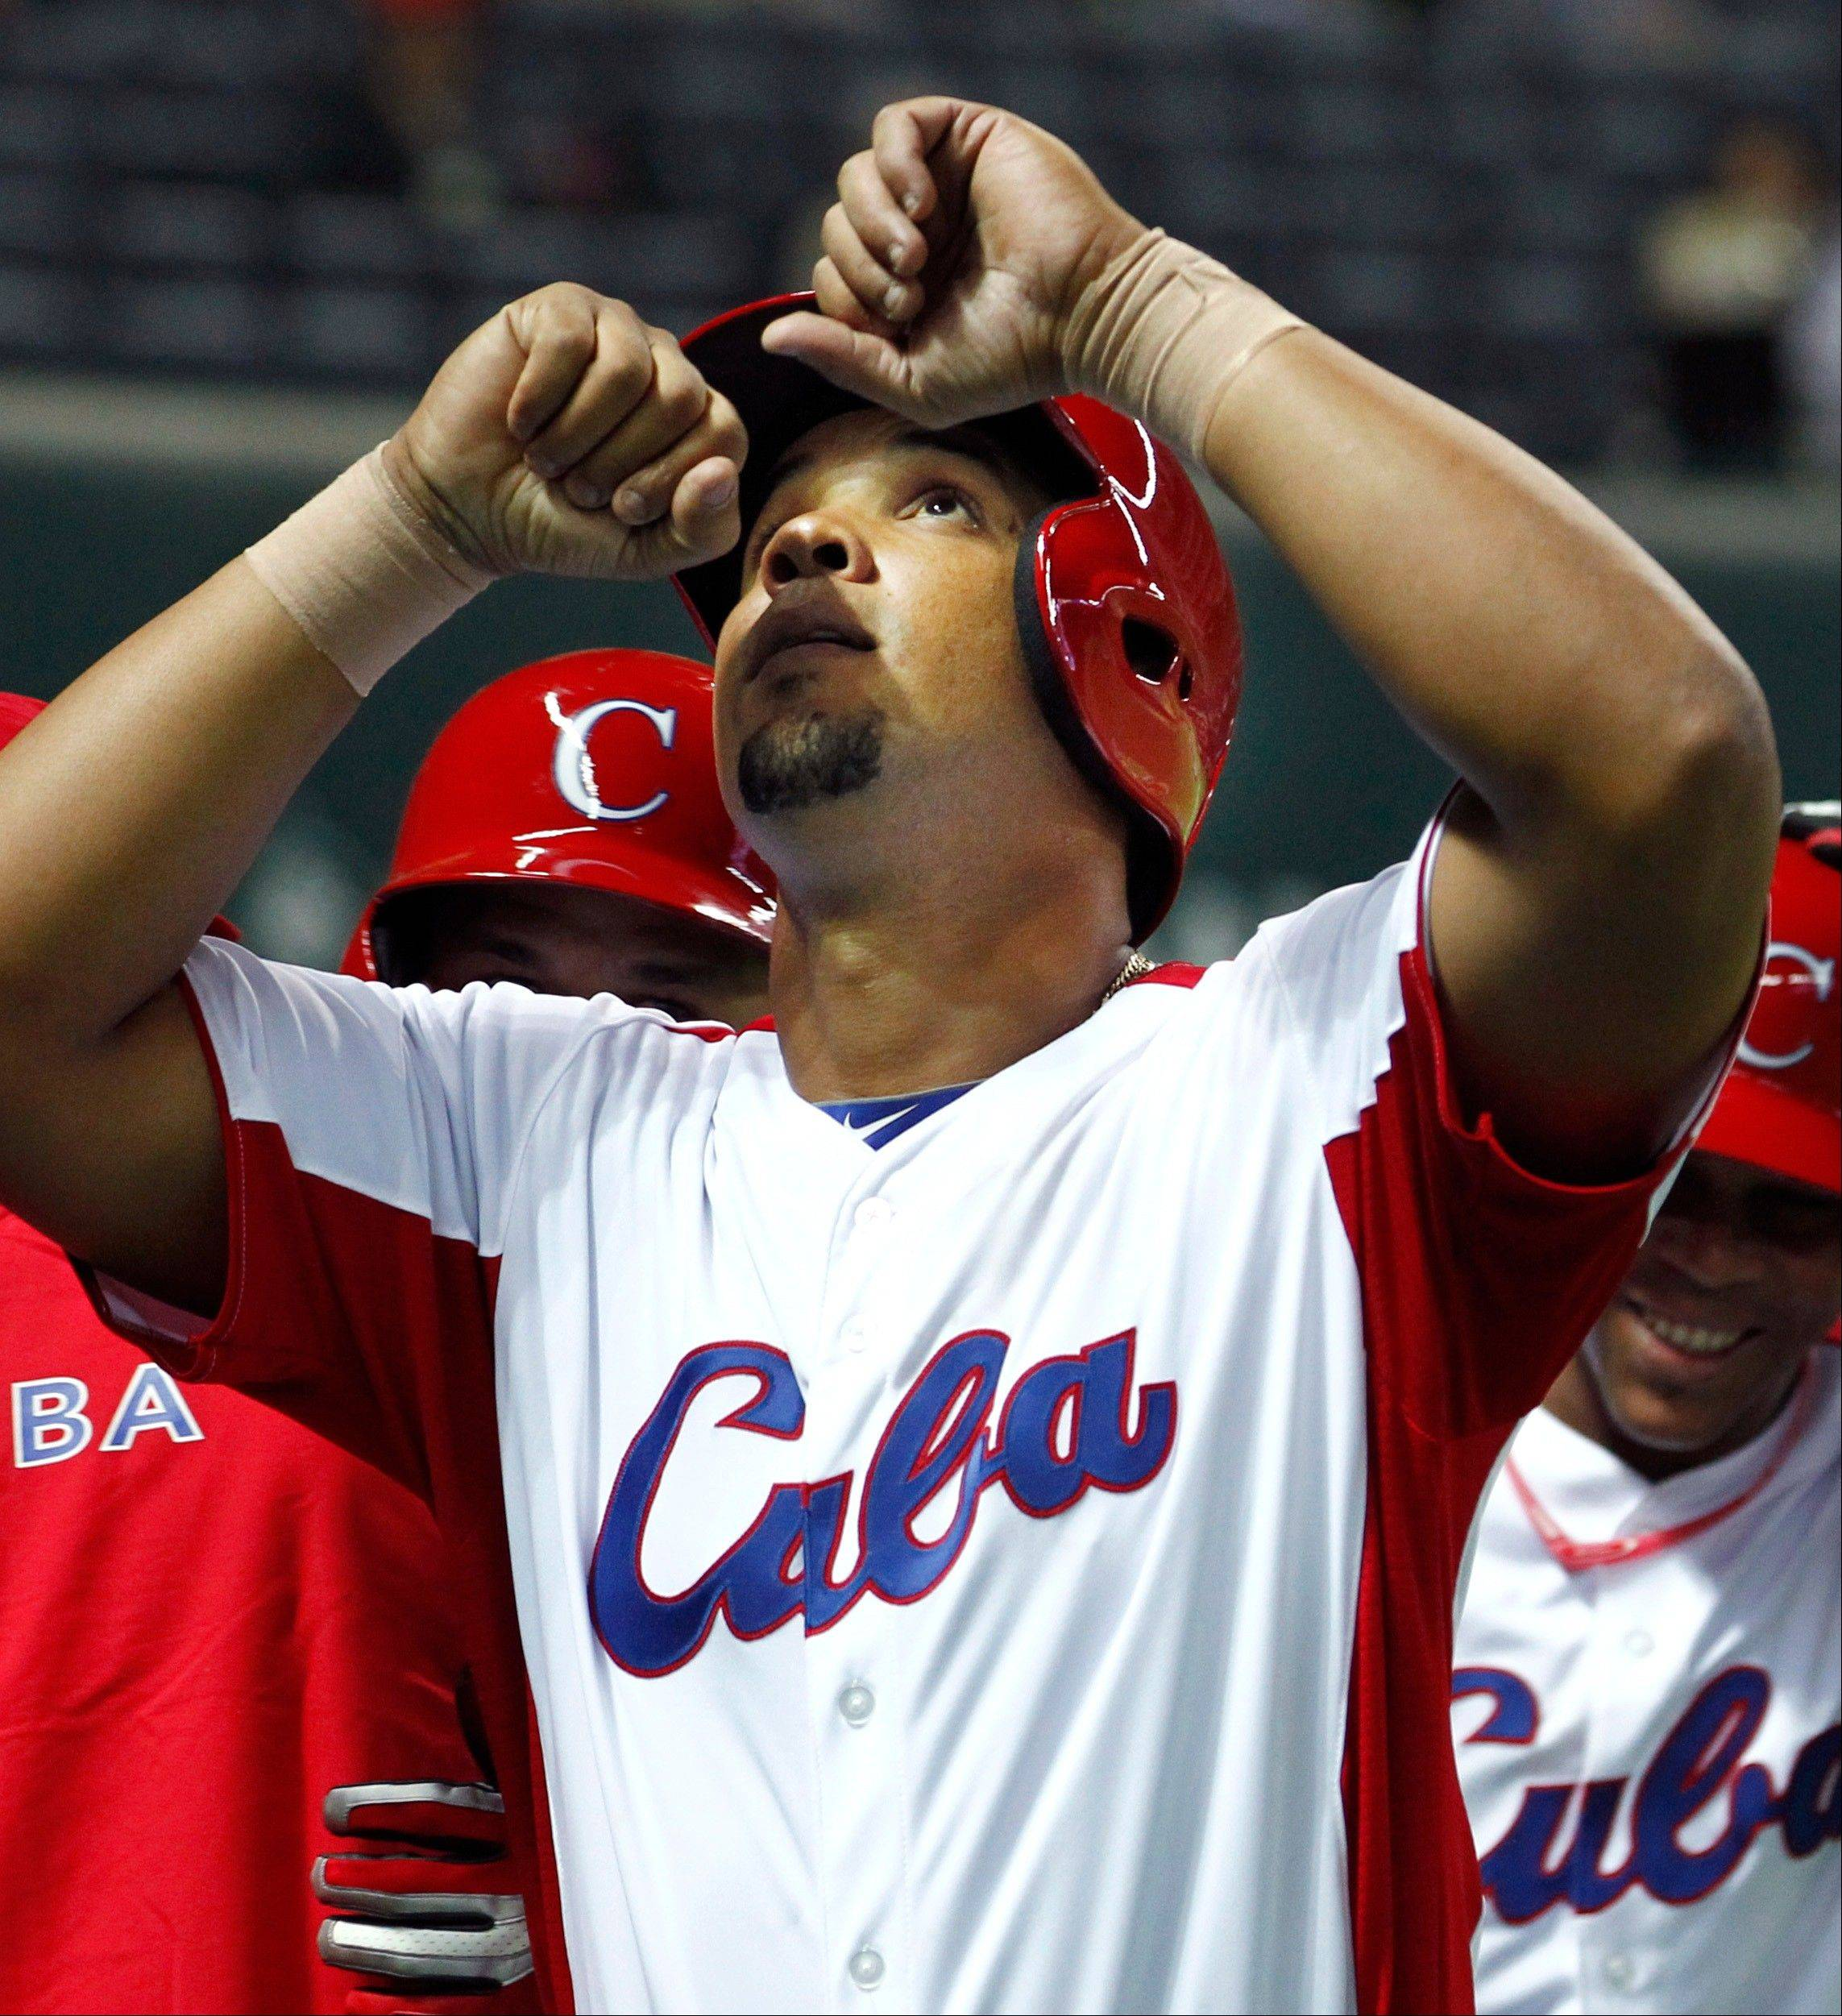 Cuban first baseman Jose Abreu, here celebrating after hitting a grand slam during the World Baseball Classic in March, officially will join the White Sox on Tuesday.